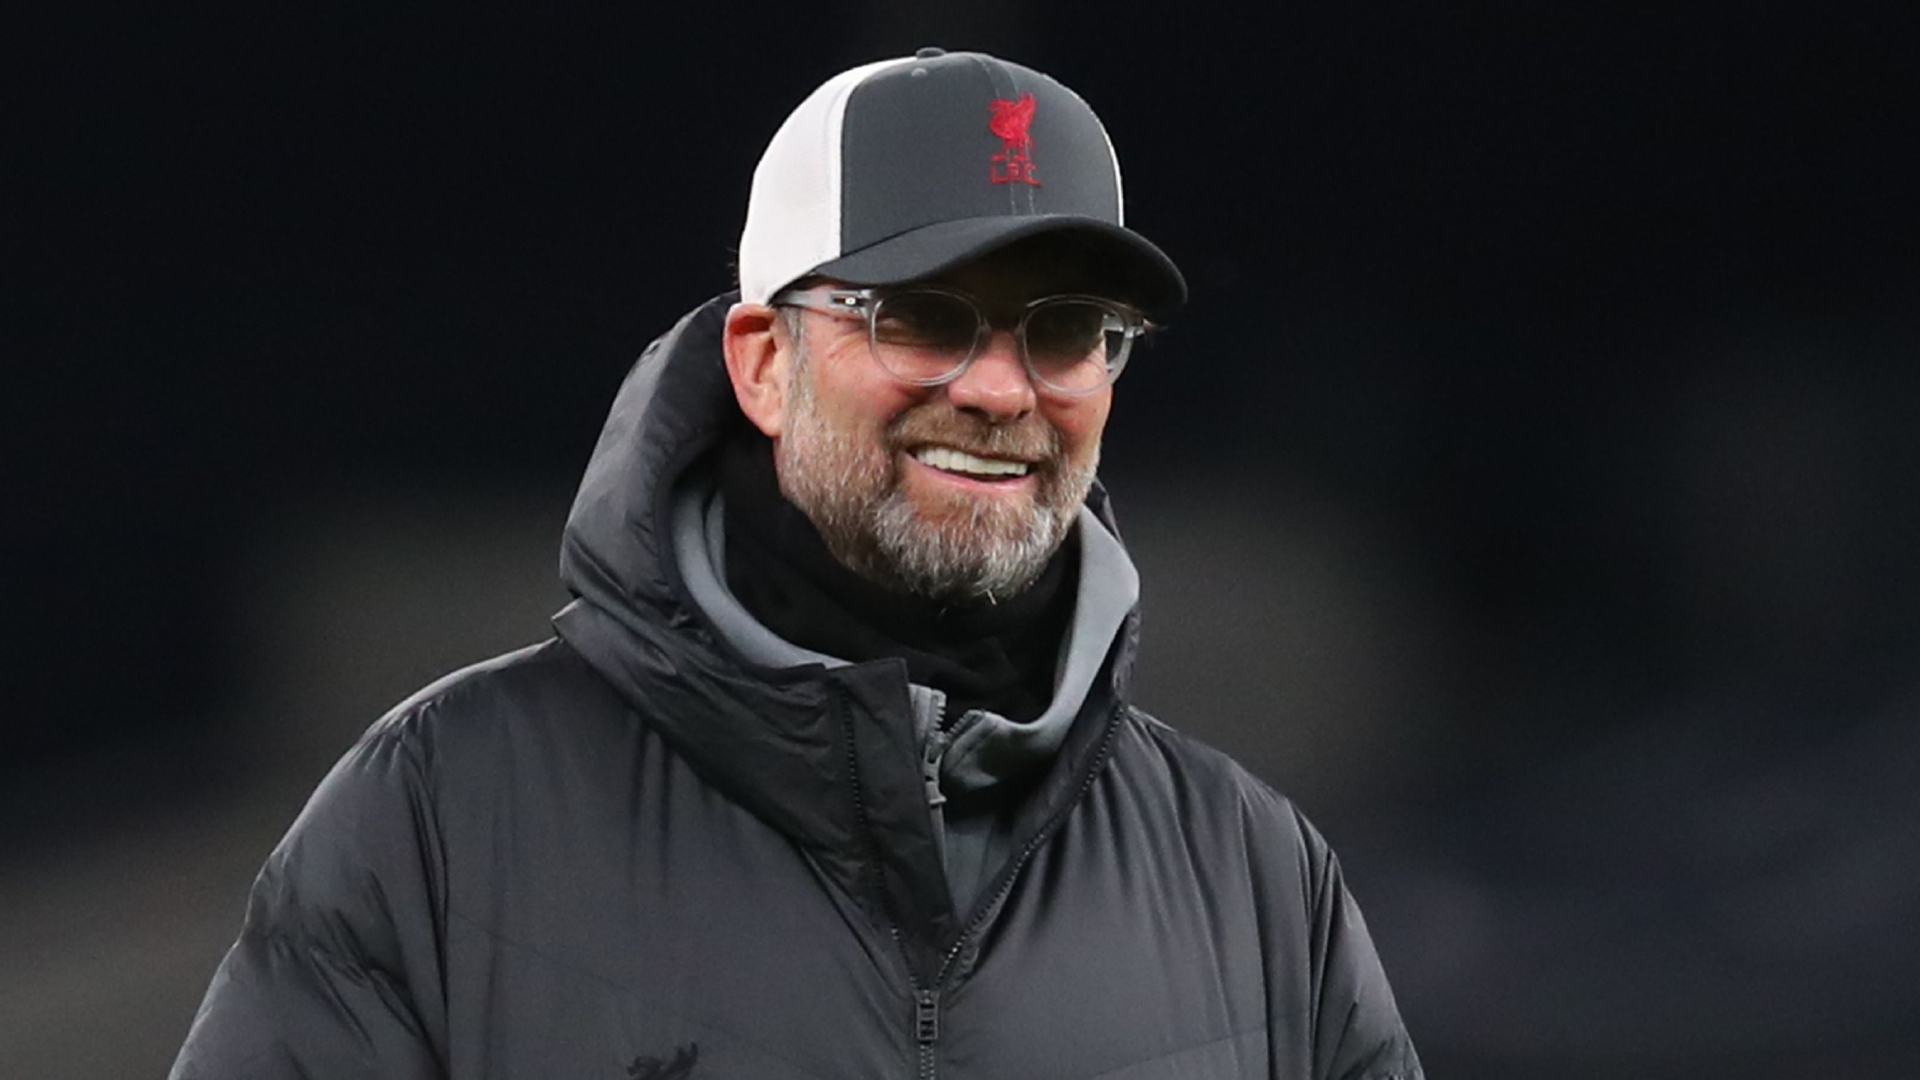 'Trash talk before the game has to be right' - Klopp reveals he doesn't speak in Liverpool dressing room